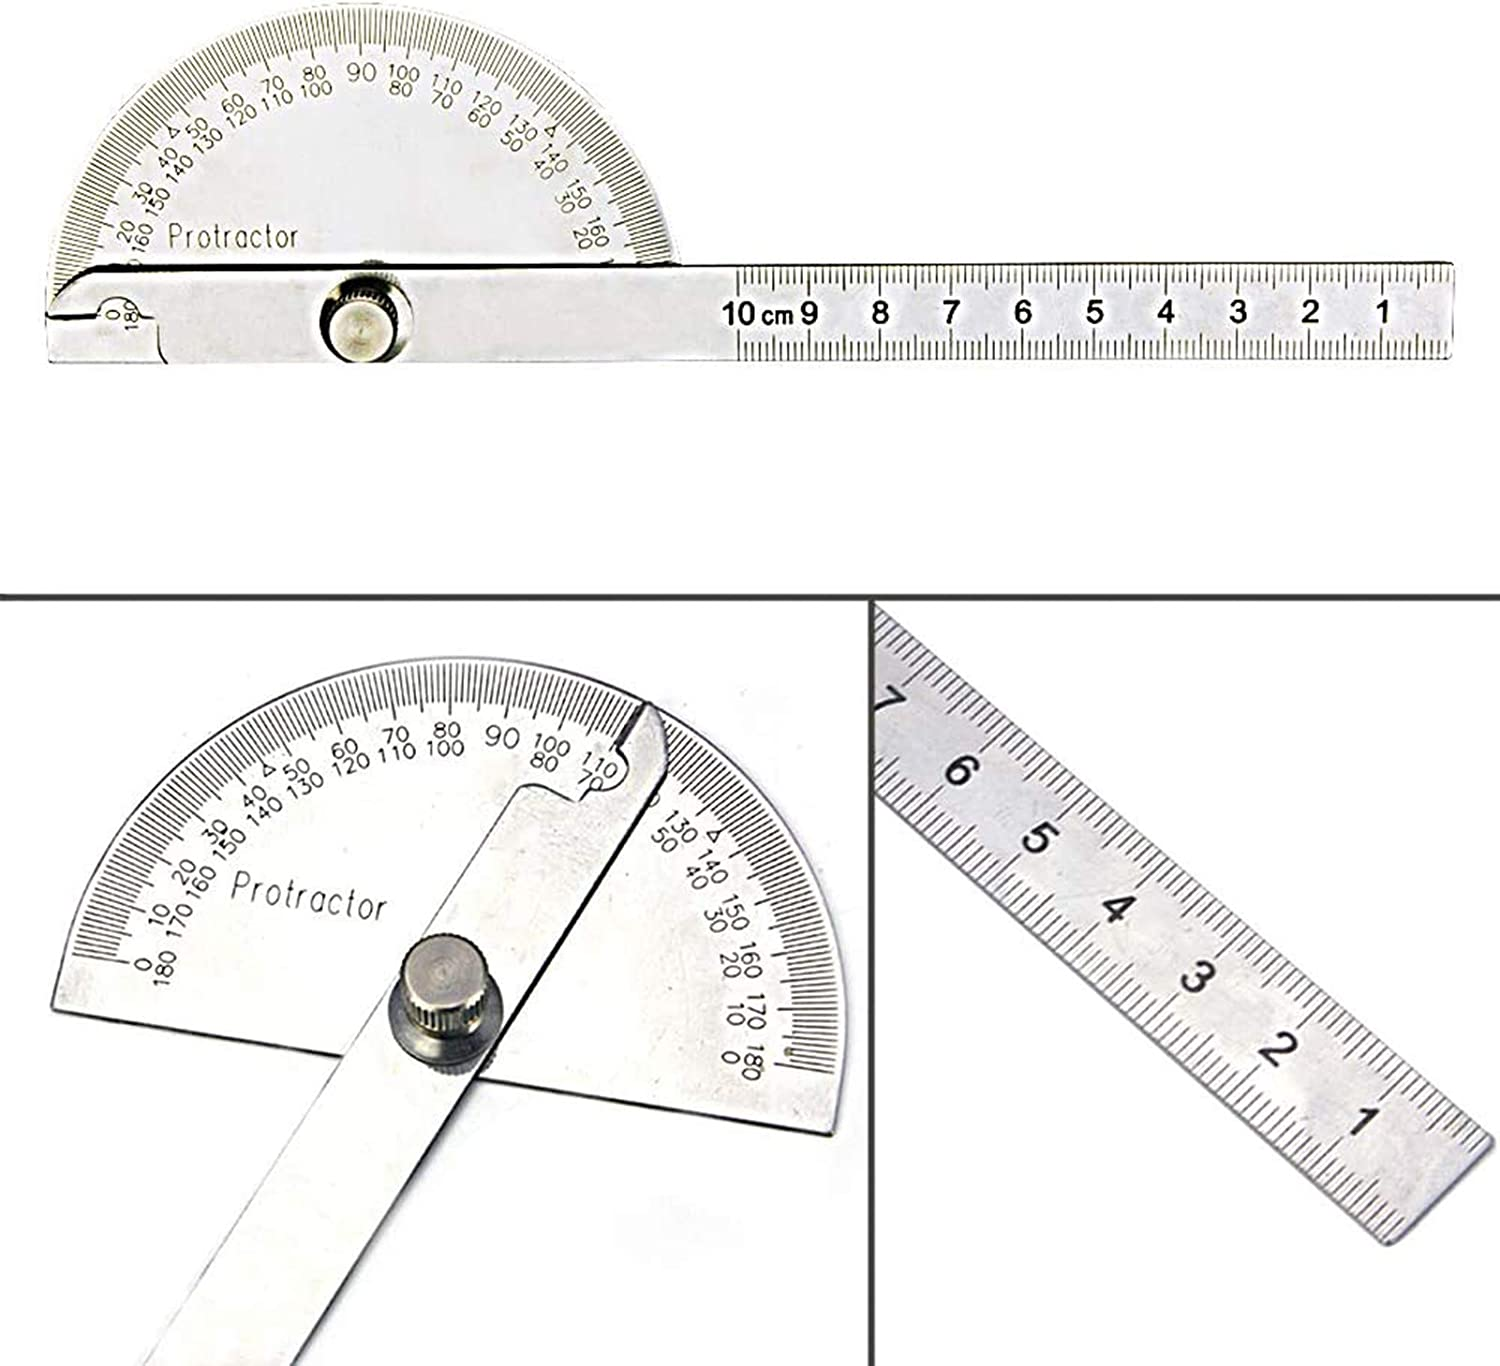 Stainless Steel Protractor 0-180 degrees with Round Head Angle Finder Arm WG-004